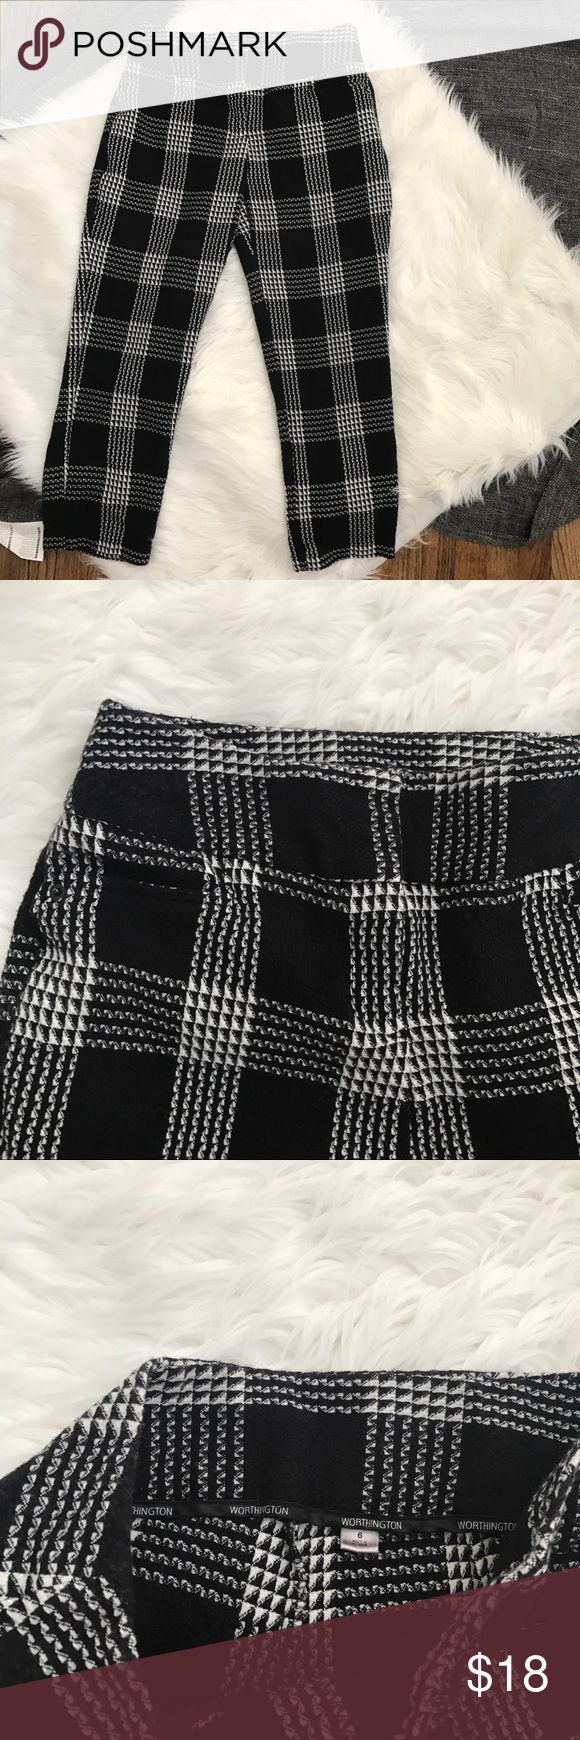 "Black and white Plaid pants Tagged a size 6  This would look great with a slouchy sweater or black boxy Crop Top. Waist : 15"" inches  Inseam : 24"" inches  Rise : 10"" inches , refer to measurements to decide if it will fit . Have any other questions ? Feel free to ask (: Worthington Pants"